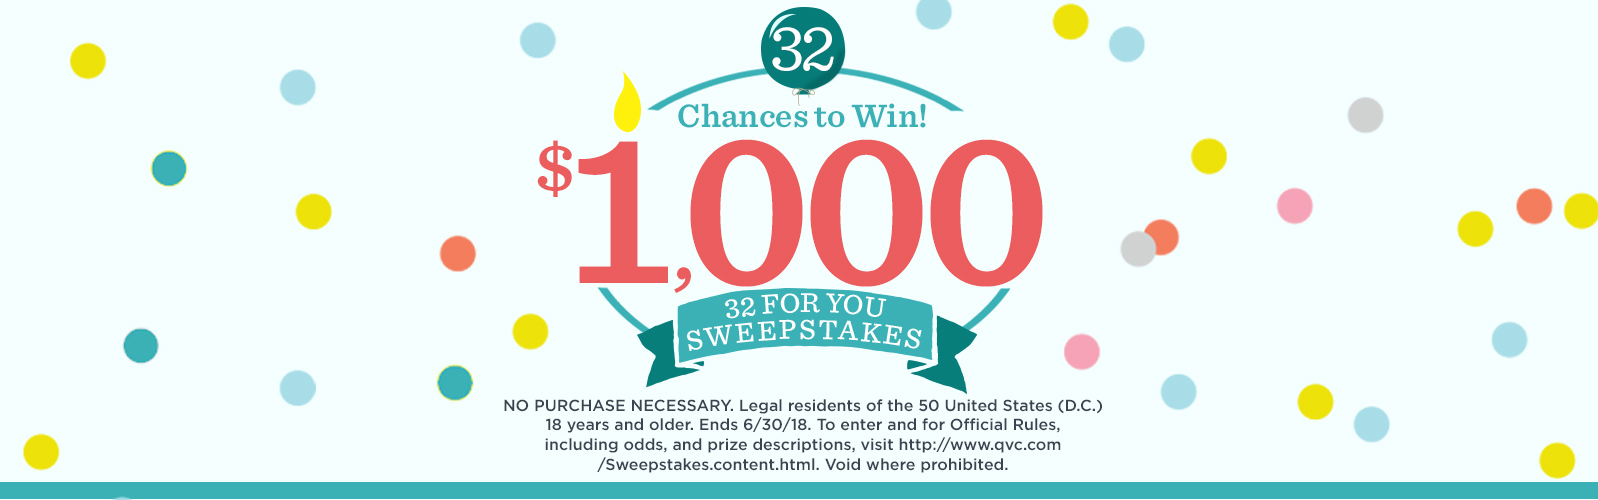 32 Chances to Win $1,000. 32 For You Sweepstakes.  NO PURCHASE NECESSARY. Legal residents of the 50 United States (D.C.) 18 years and older. Ends 6/30/18. To enter and for Official Rules, including odds, and prize descriptions, visit http://www.qvc.com/Sweepstakes.content.html. Void where prohibited.